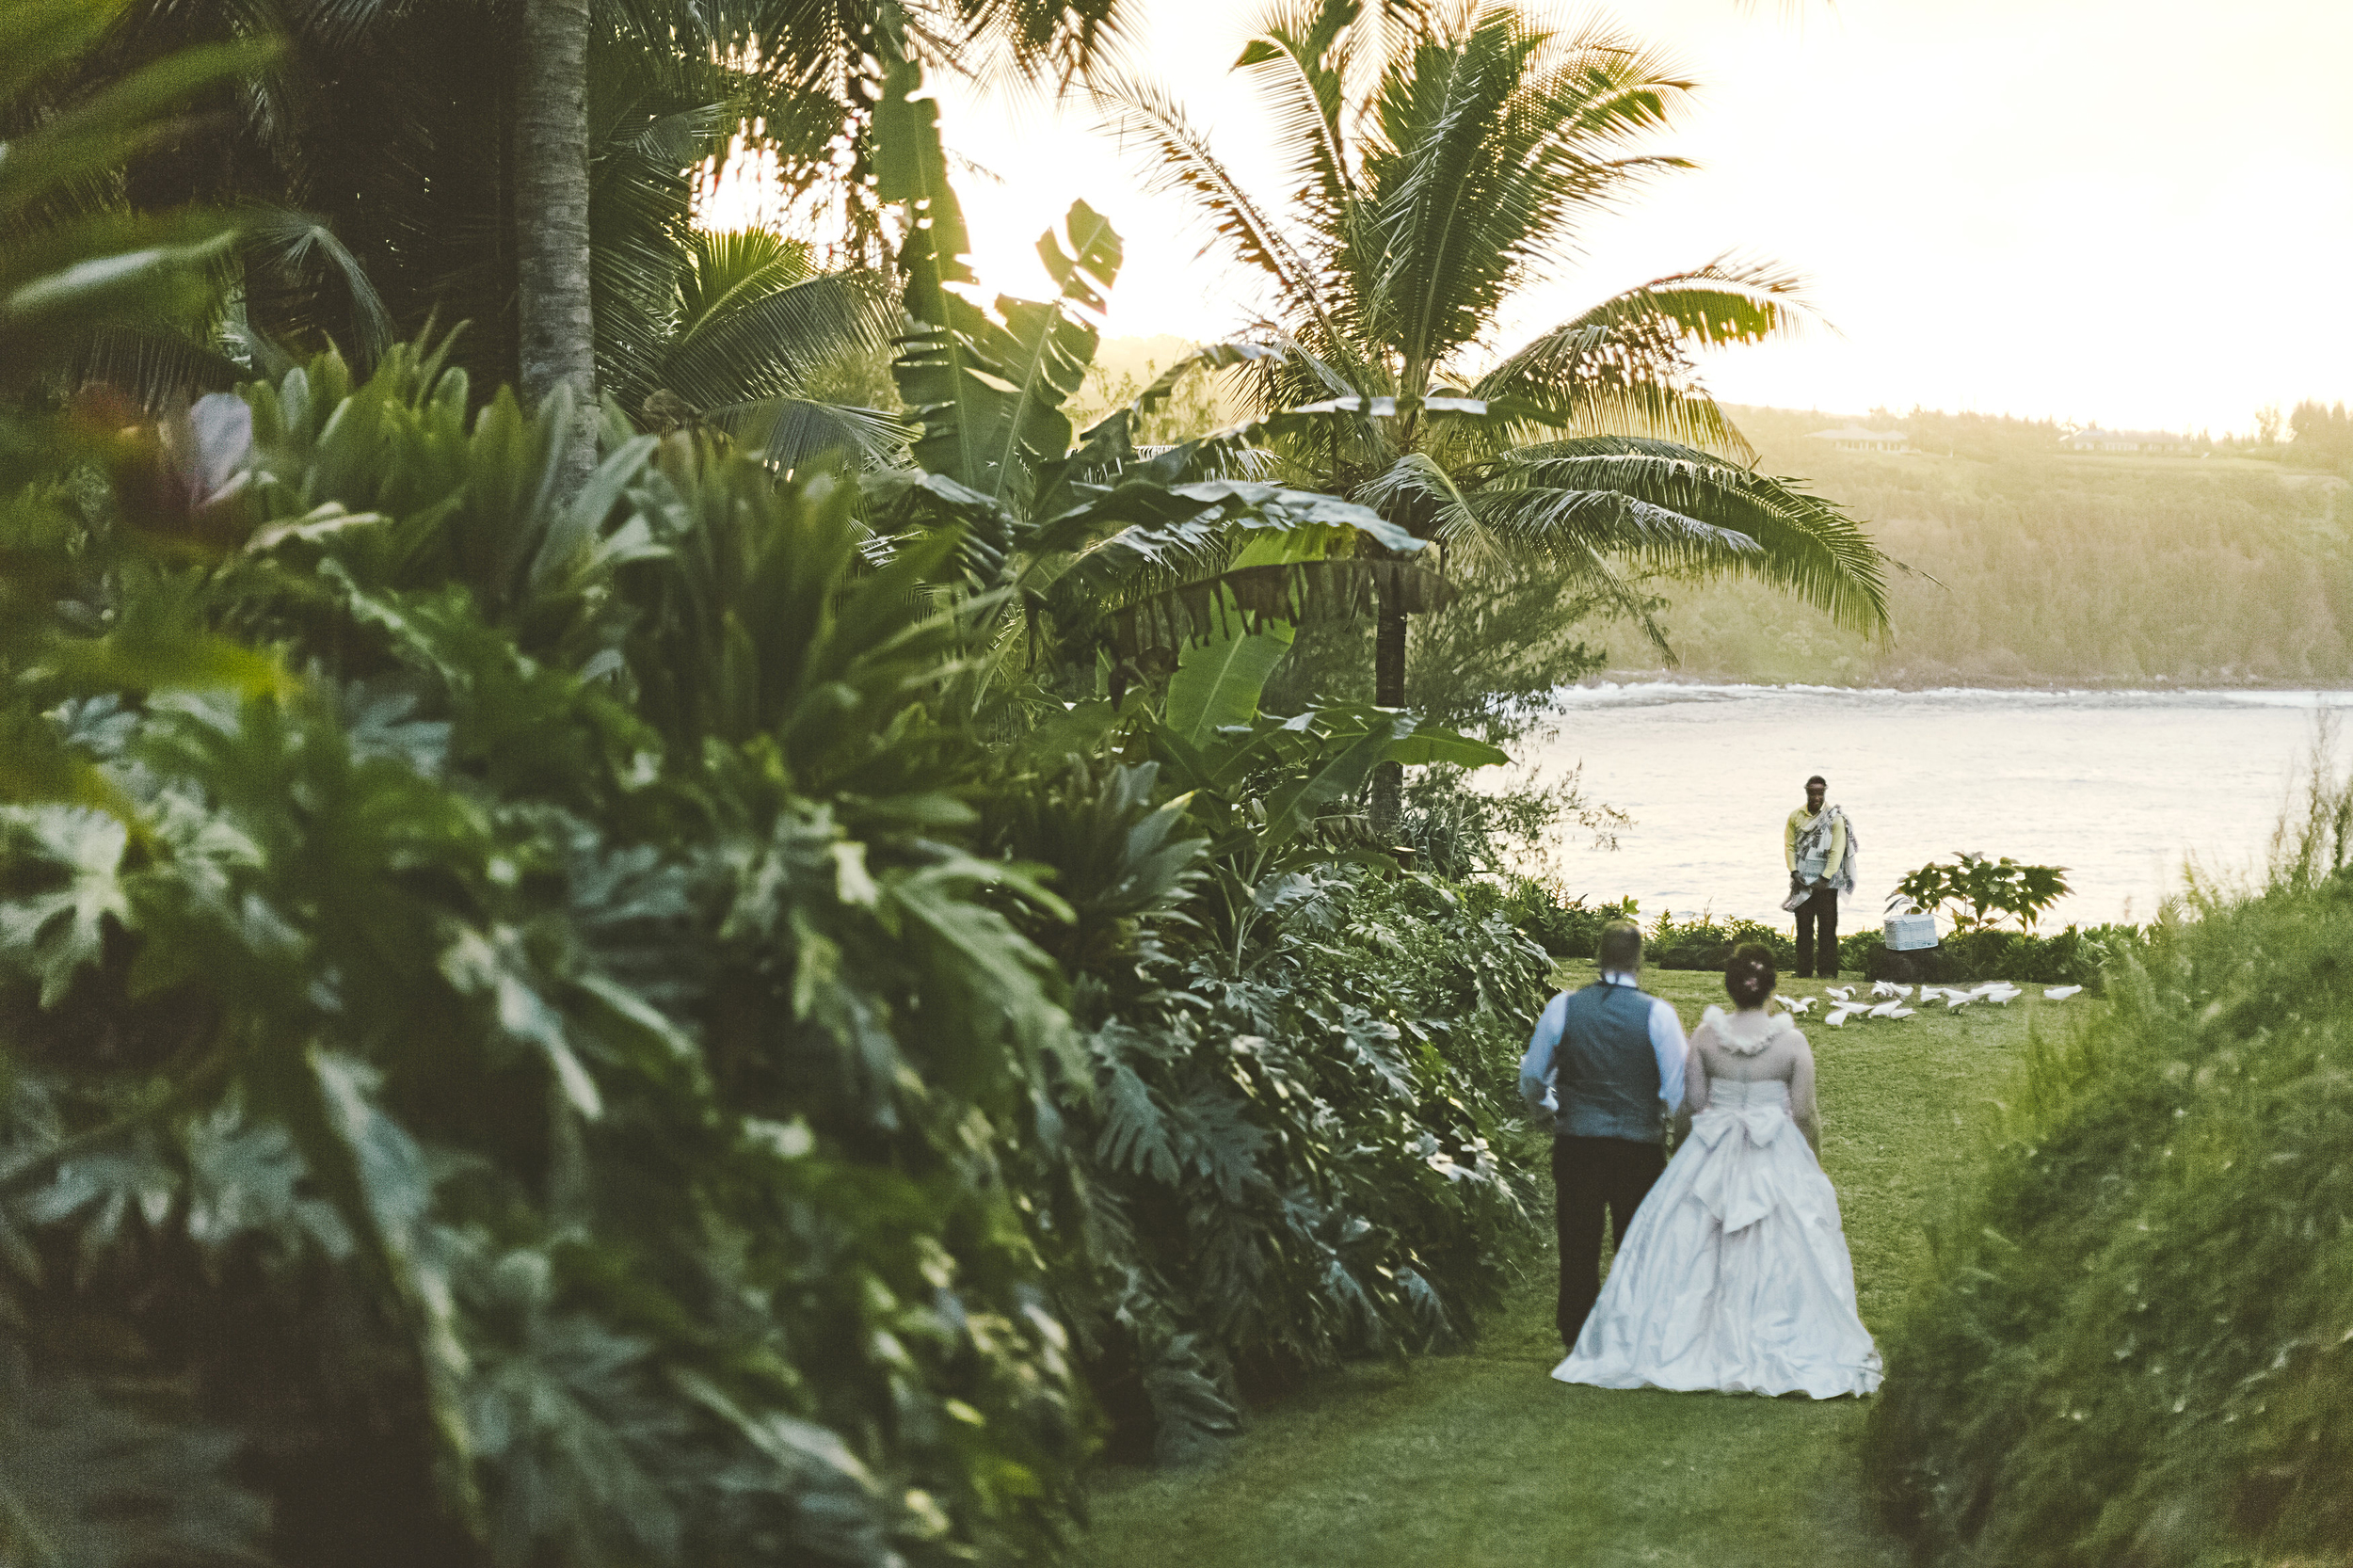 angie-diaz-photography-maui-elopement-95.jpg